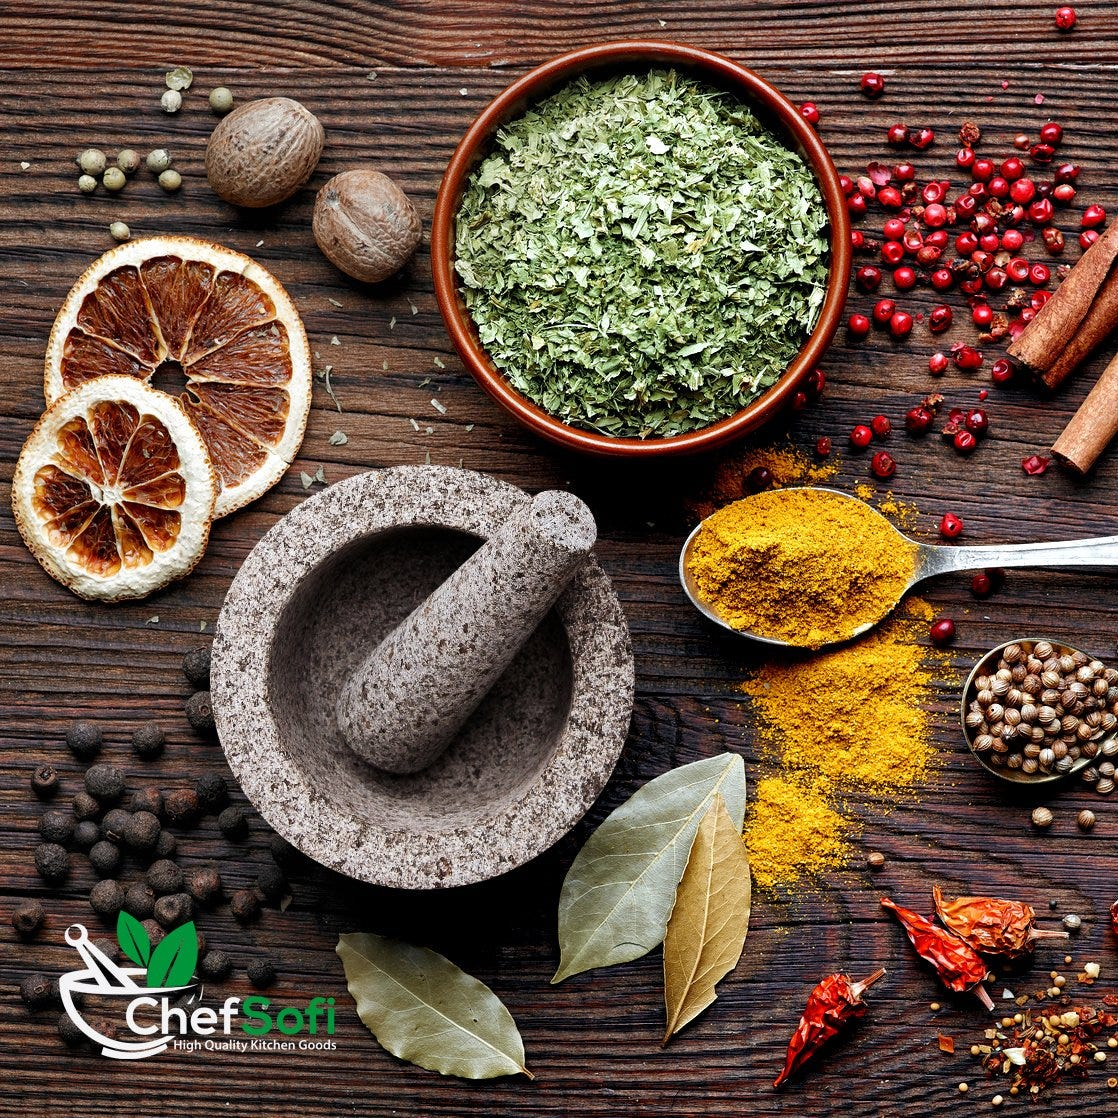 Mortar and pestle on a table surrounded by spices.